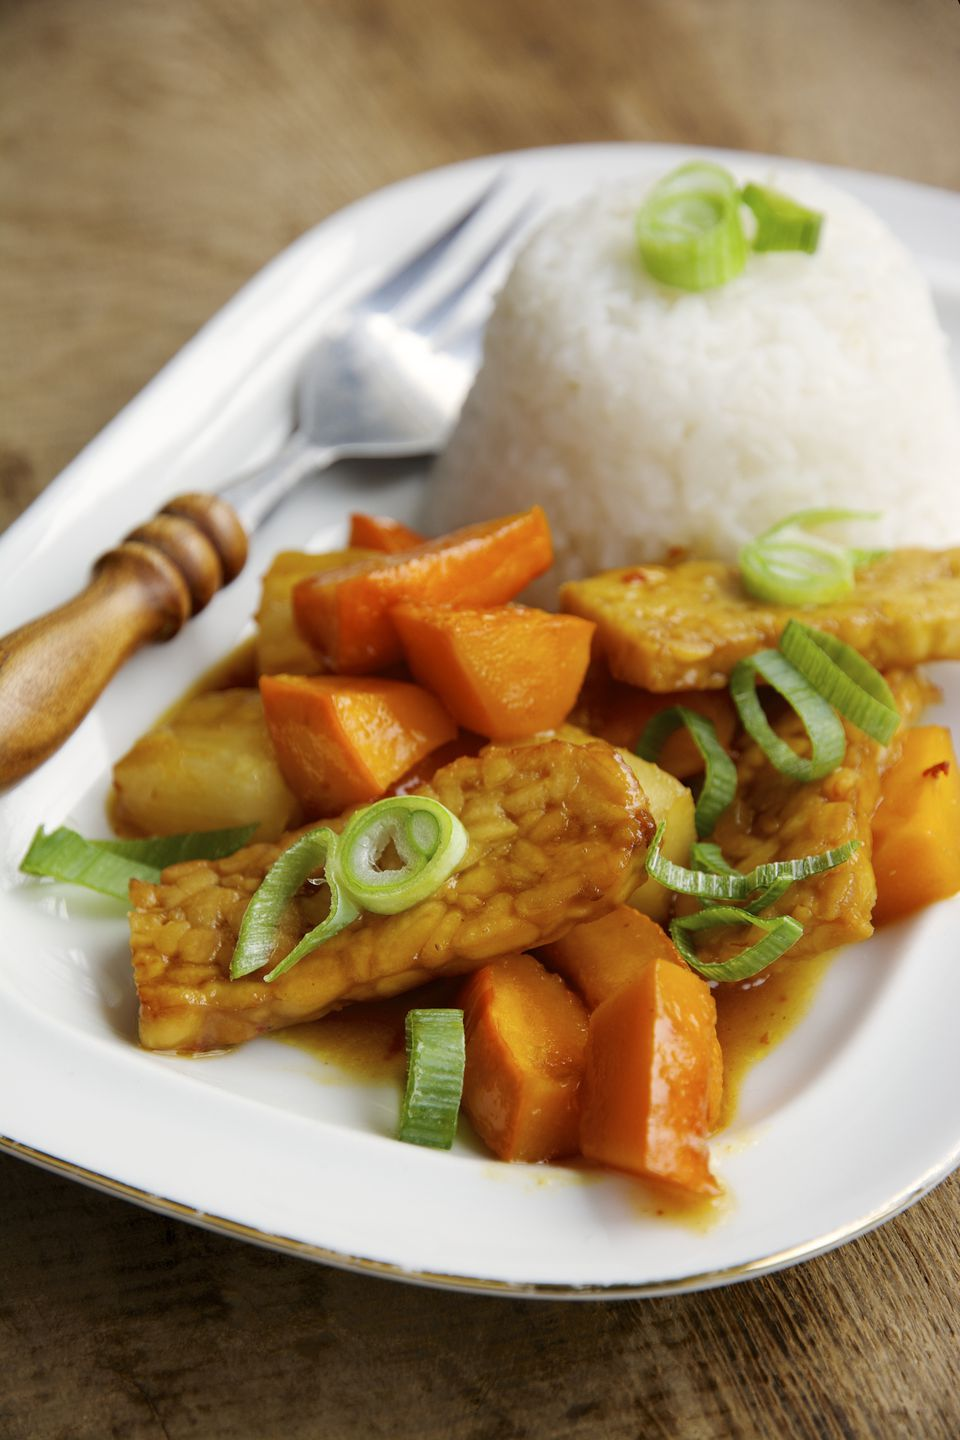 Sweet-sour tempeh with red uchi kuri squash and rice